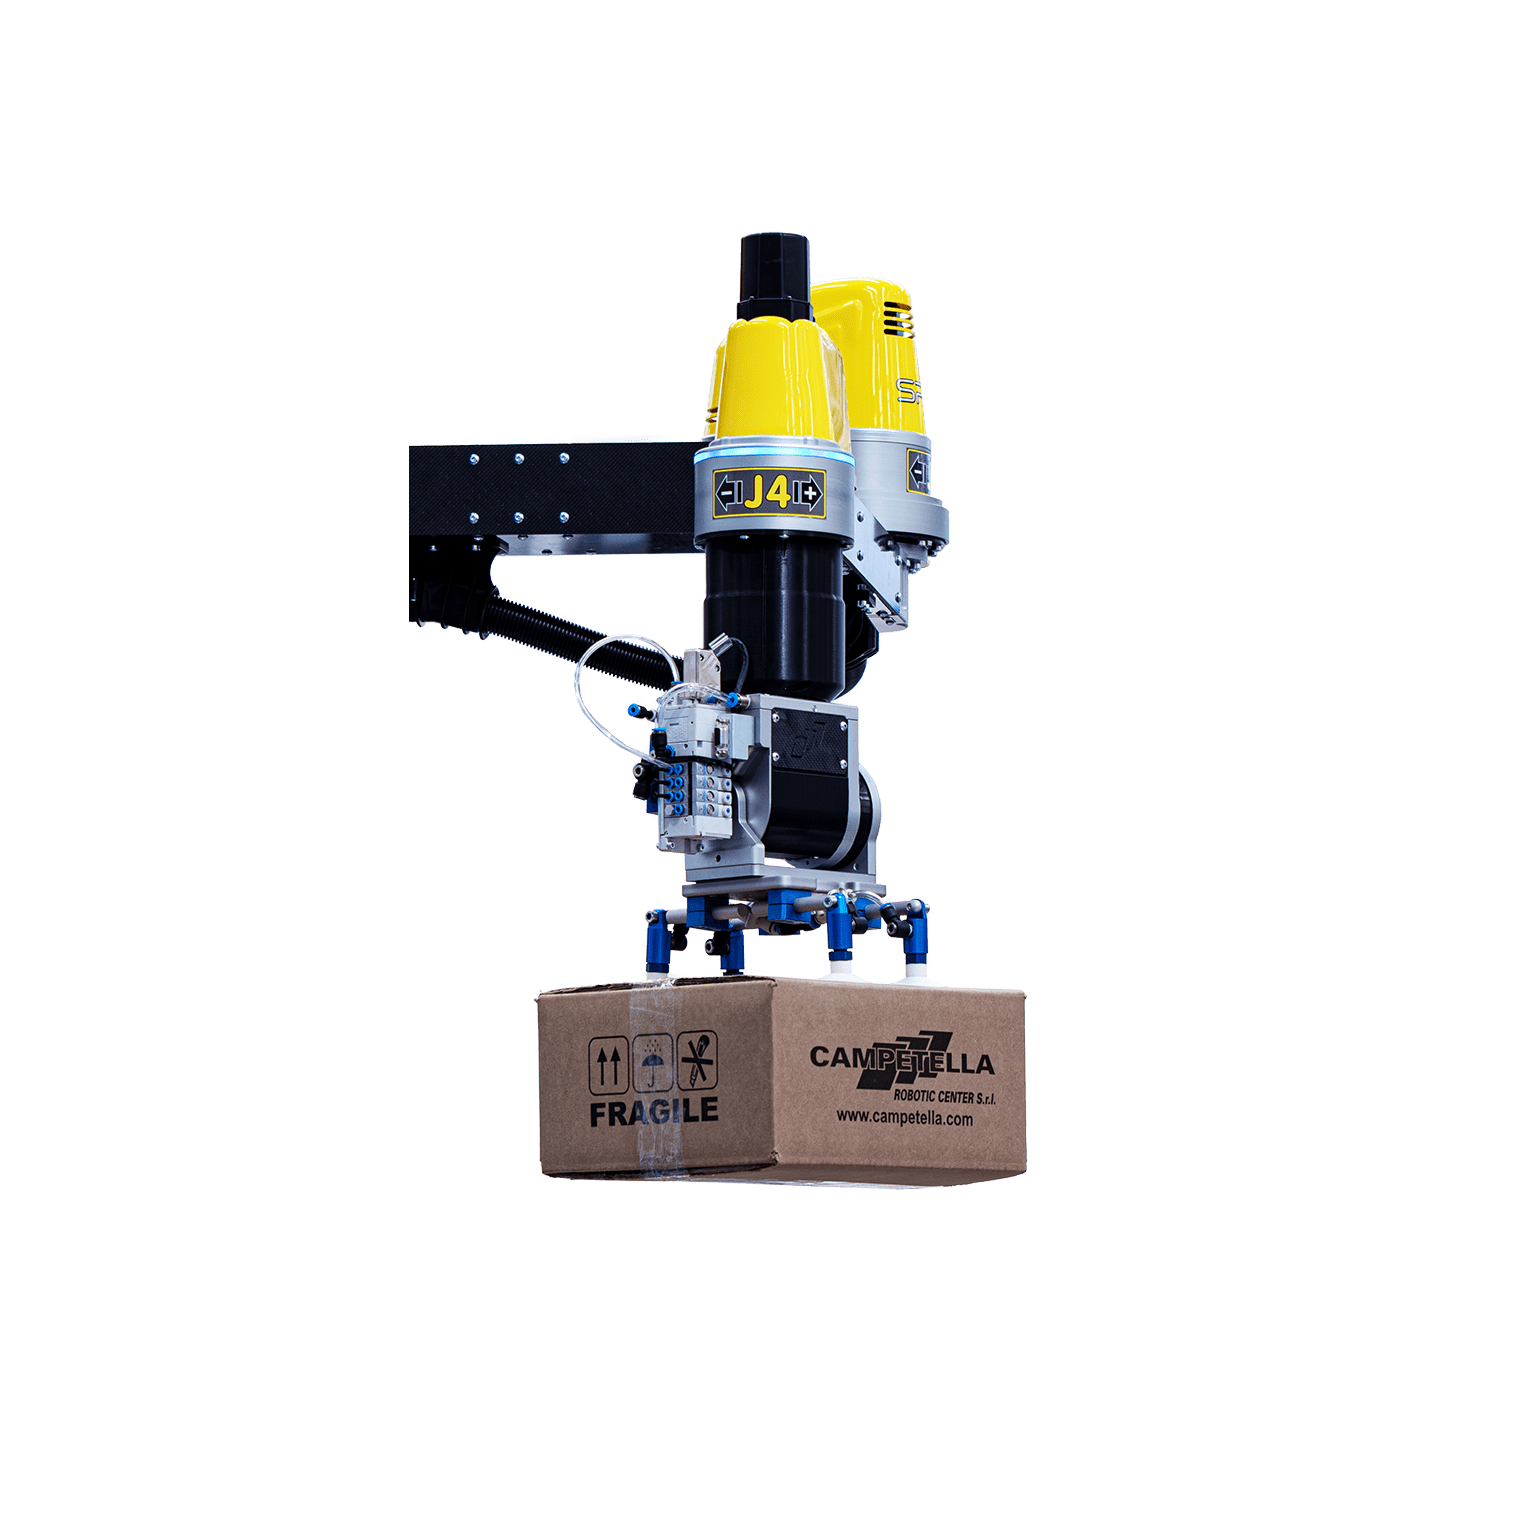 palletizing-robot-system-campetella-robotic-center